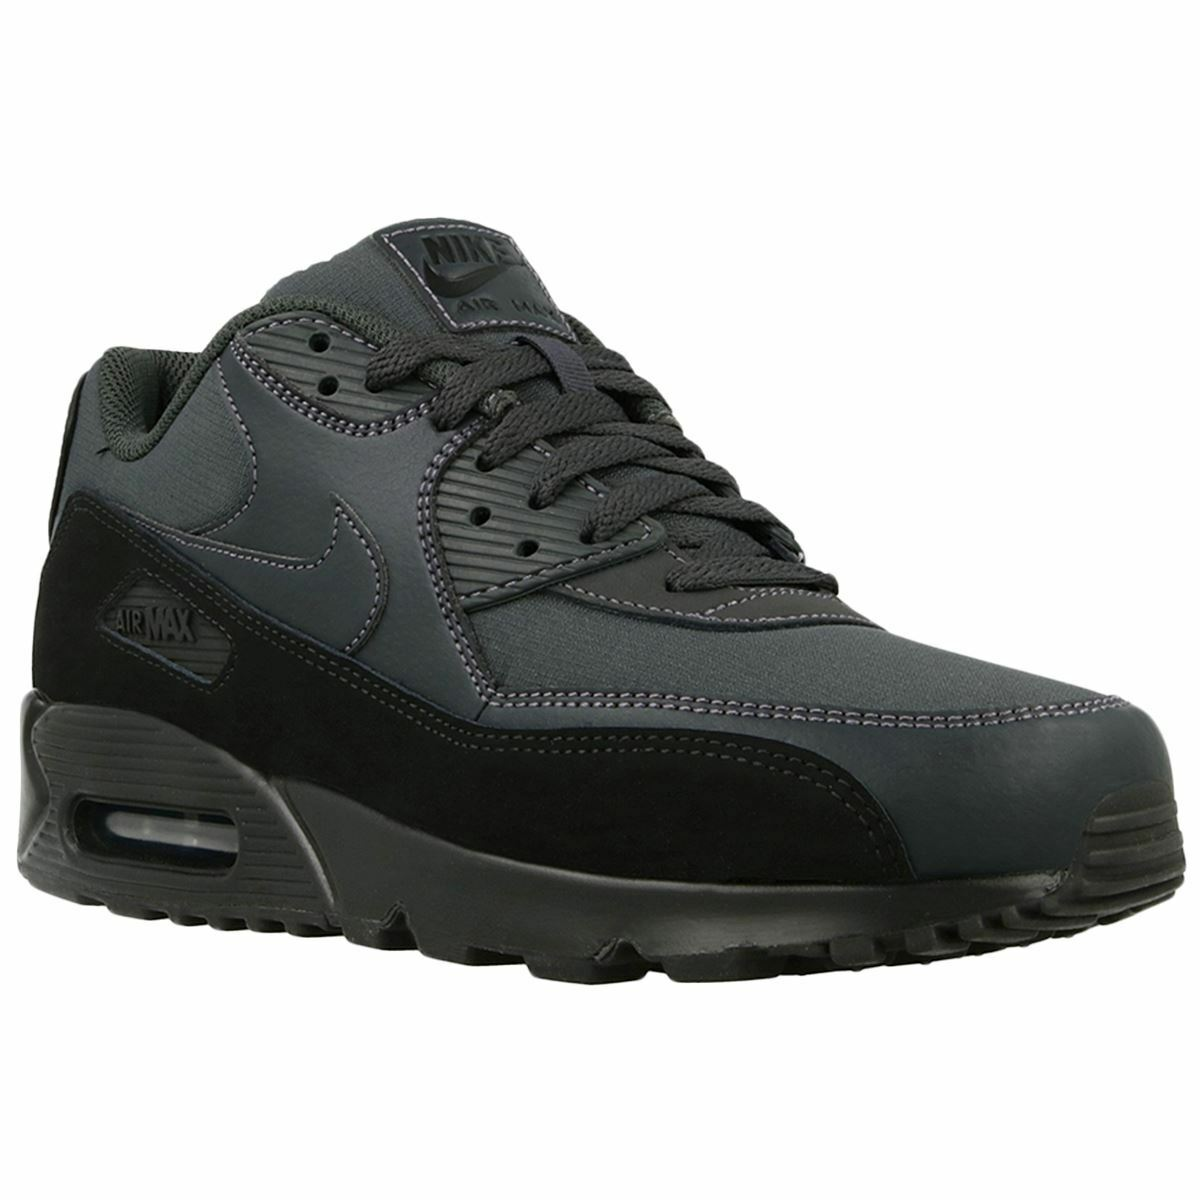 Nike Air Max 90 Ess Coated Leather Low-Top Running Sneakers Mens Trainers Comfortable and good-looking